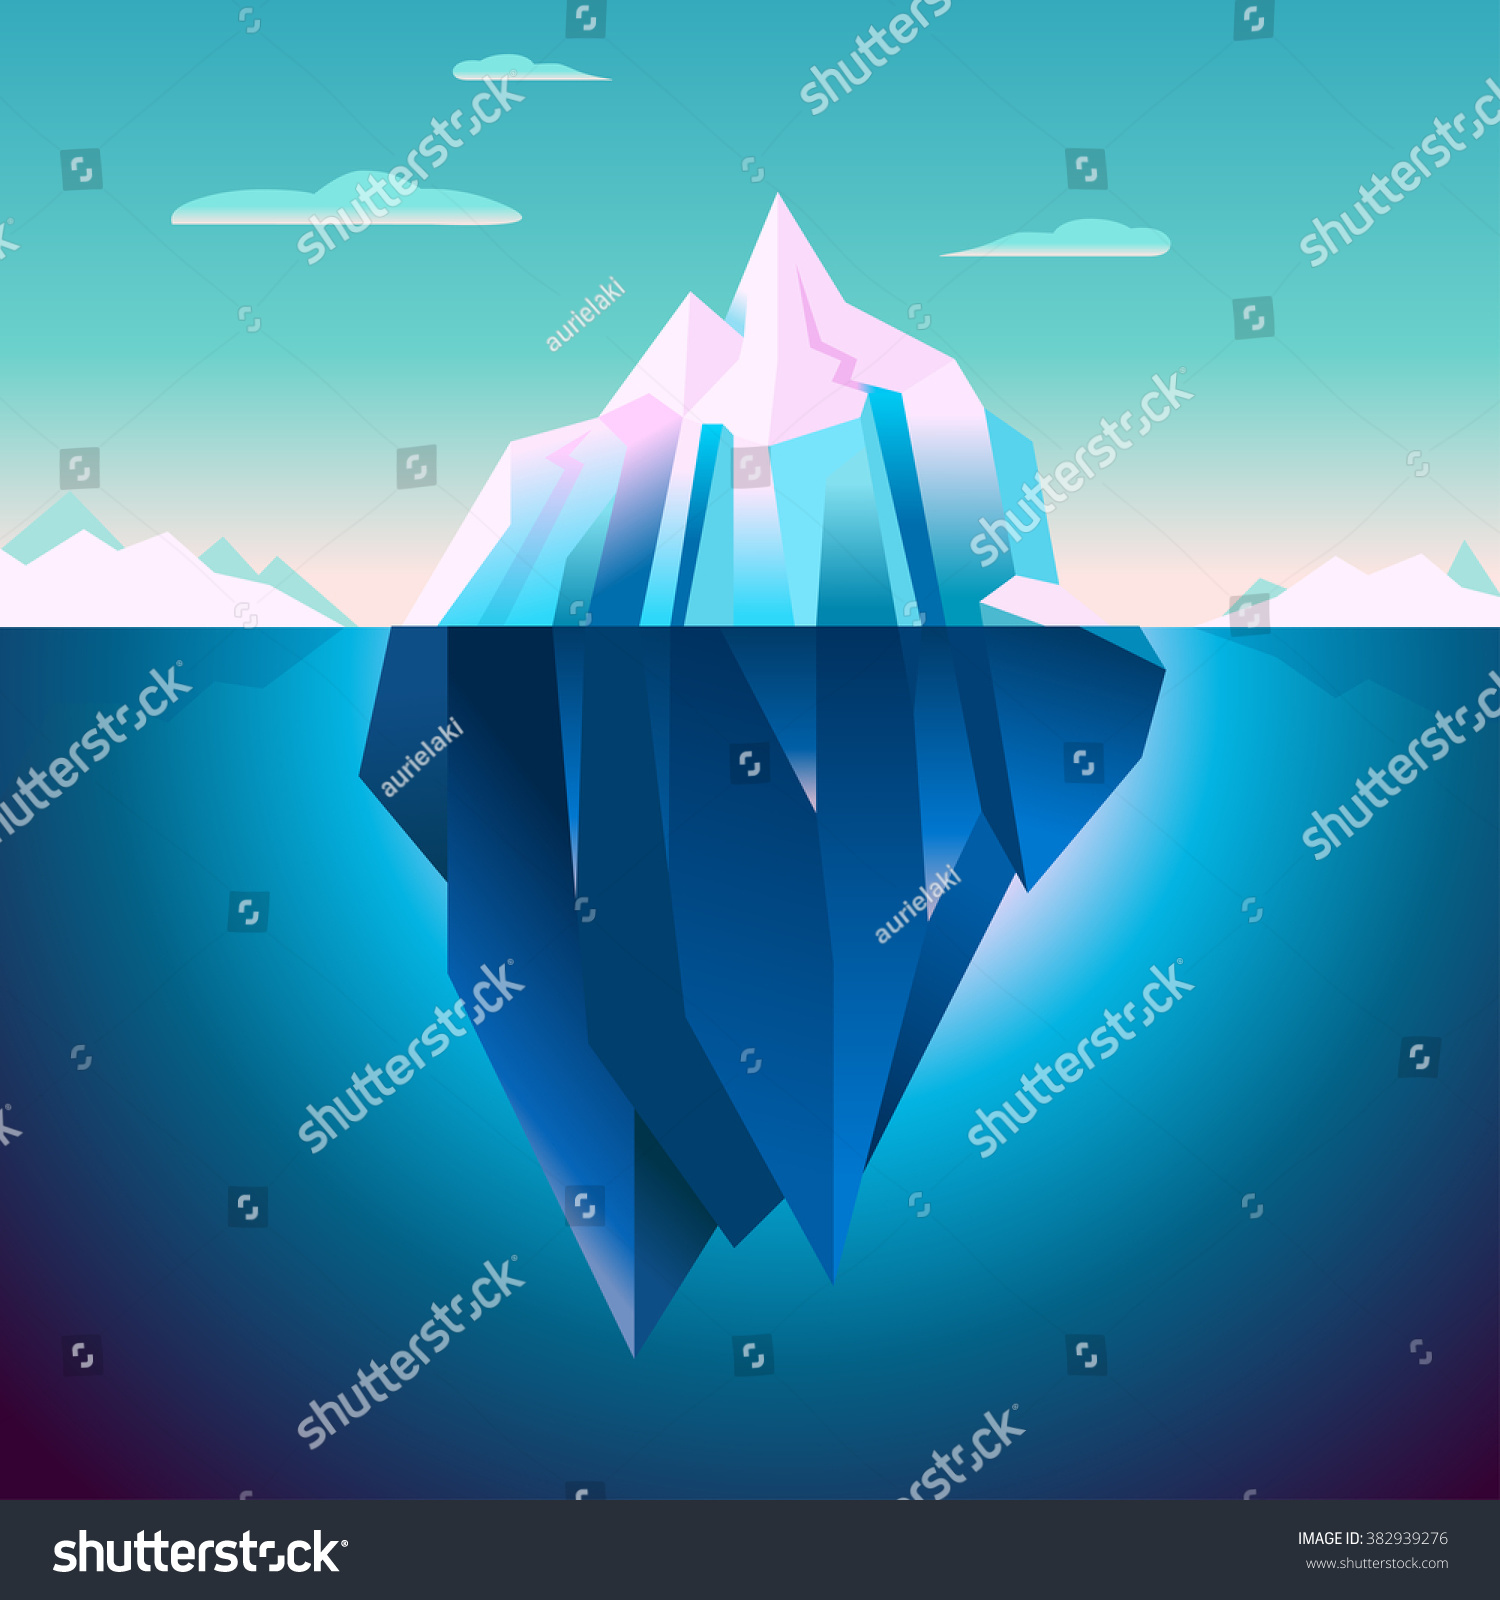 arctic iceberg sunrise lights background vector stock vector arctic iceberg sunrise lights background vector polar morning landscape quartz ice in serenity colors